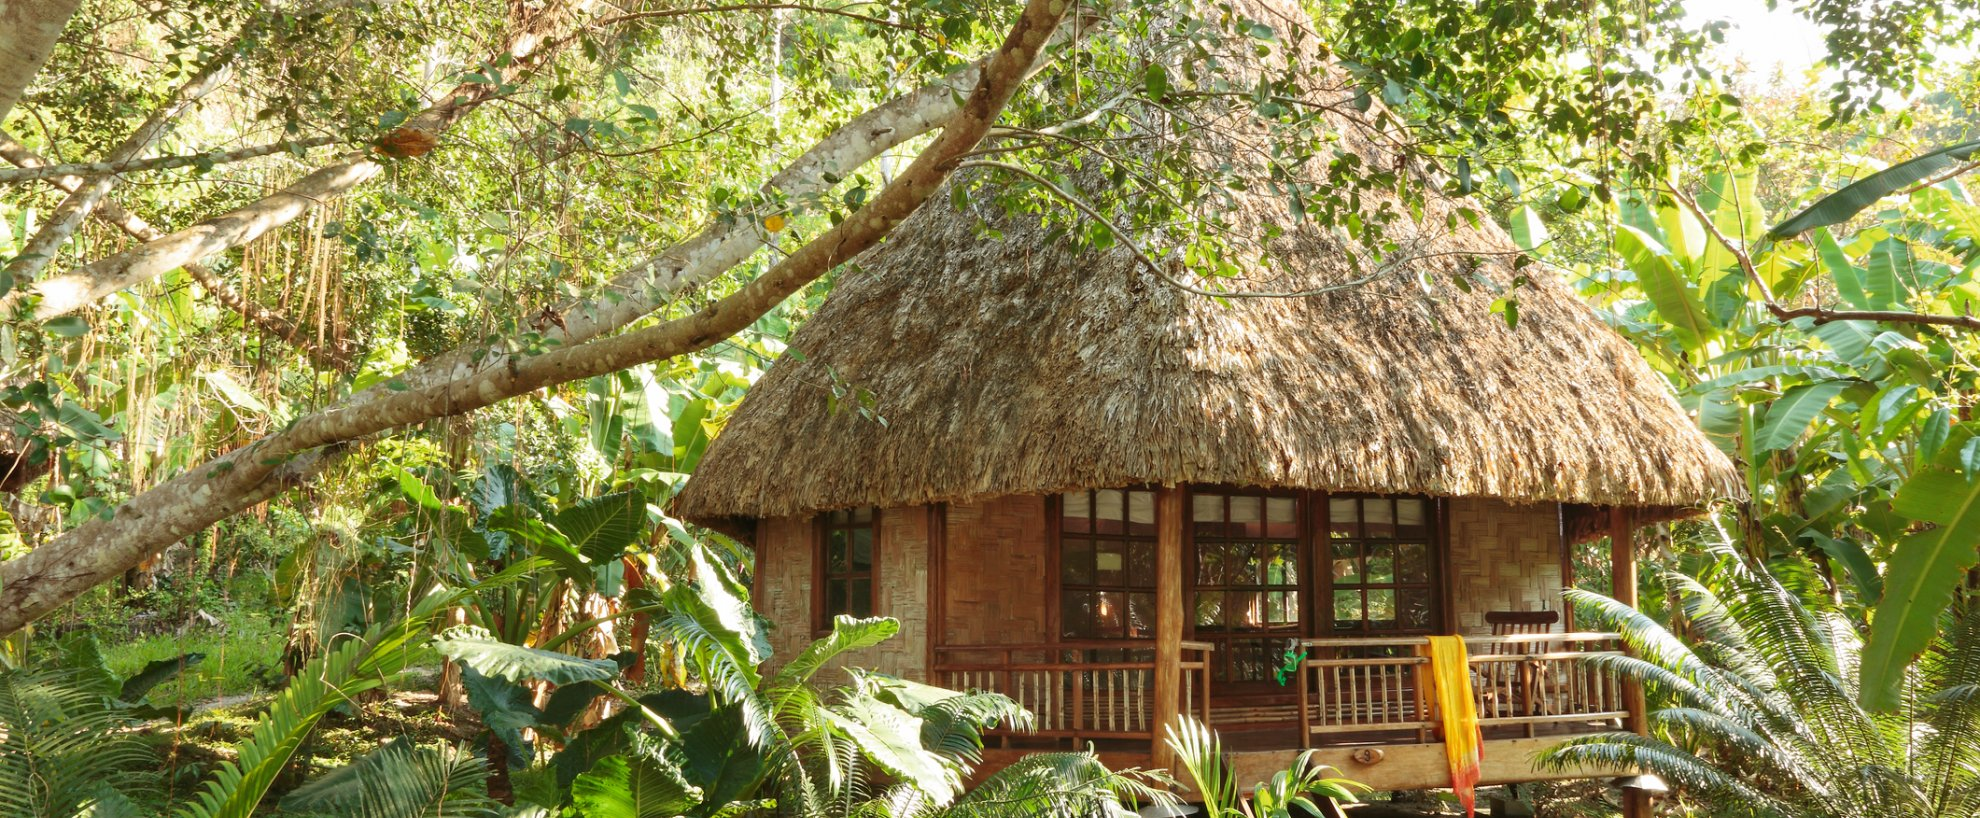 Ayurveda Kuren Indien Südindien Andamanen Andaman Nicobar Islands Island Havelock Barefoot at Havelock Zimmer Cottages